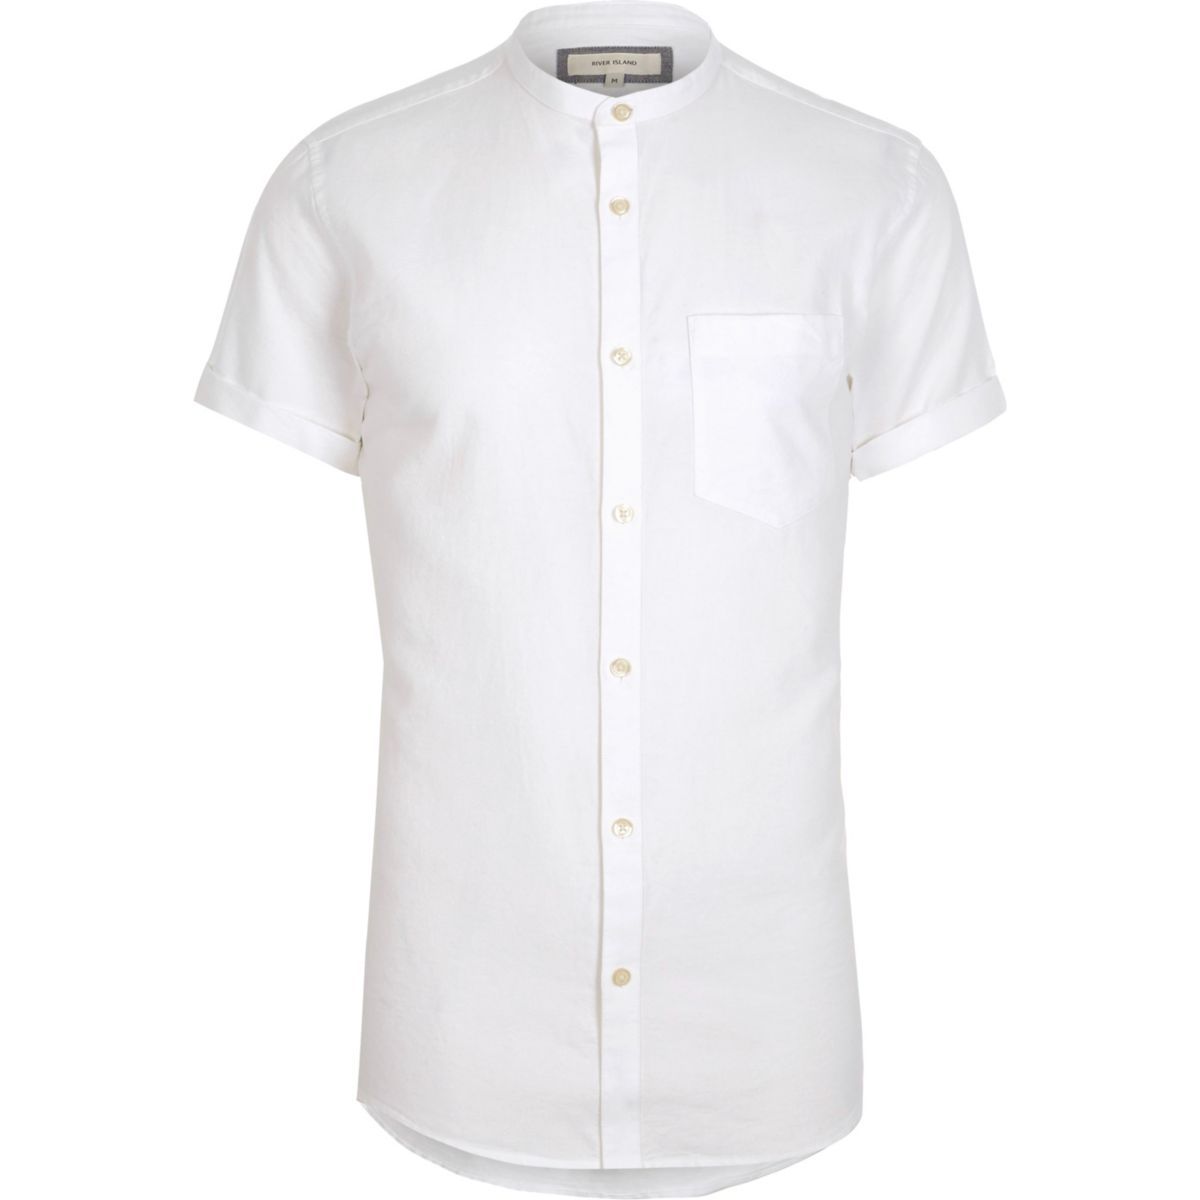 White short sleeve oxford grandad shirt shirts sale men for Short sleeve grandad shirt